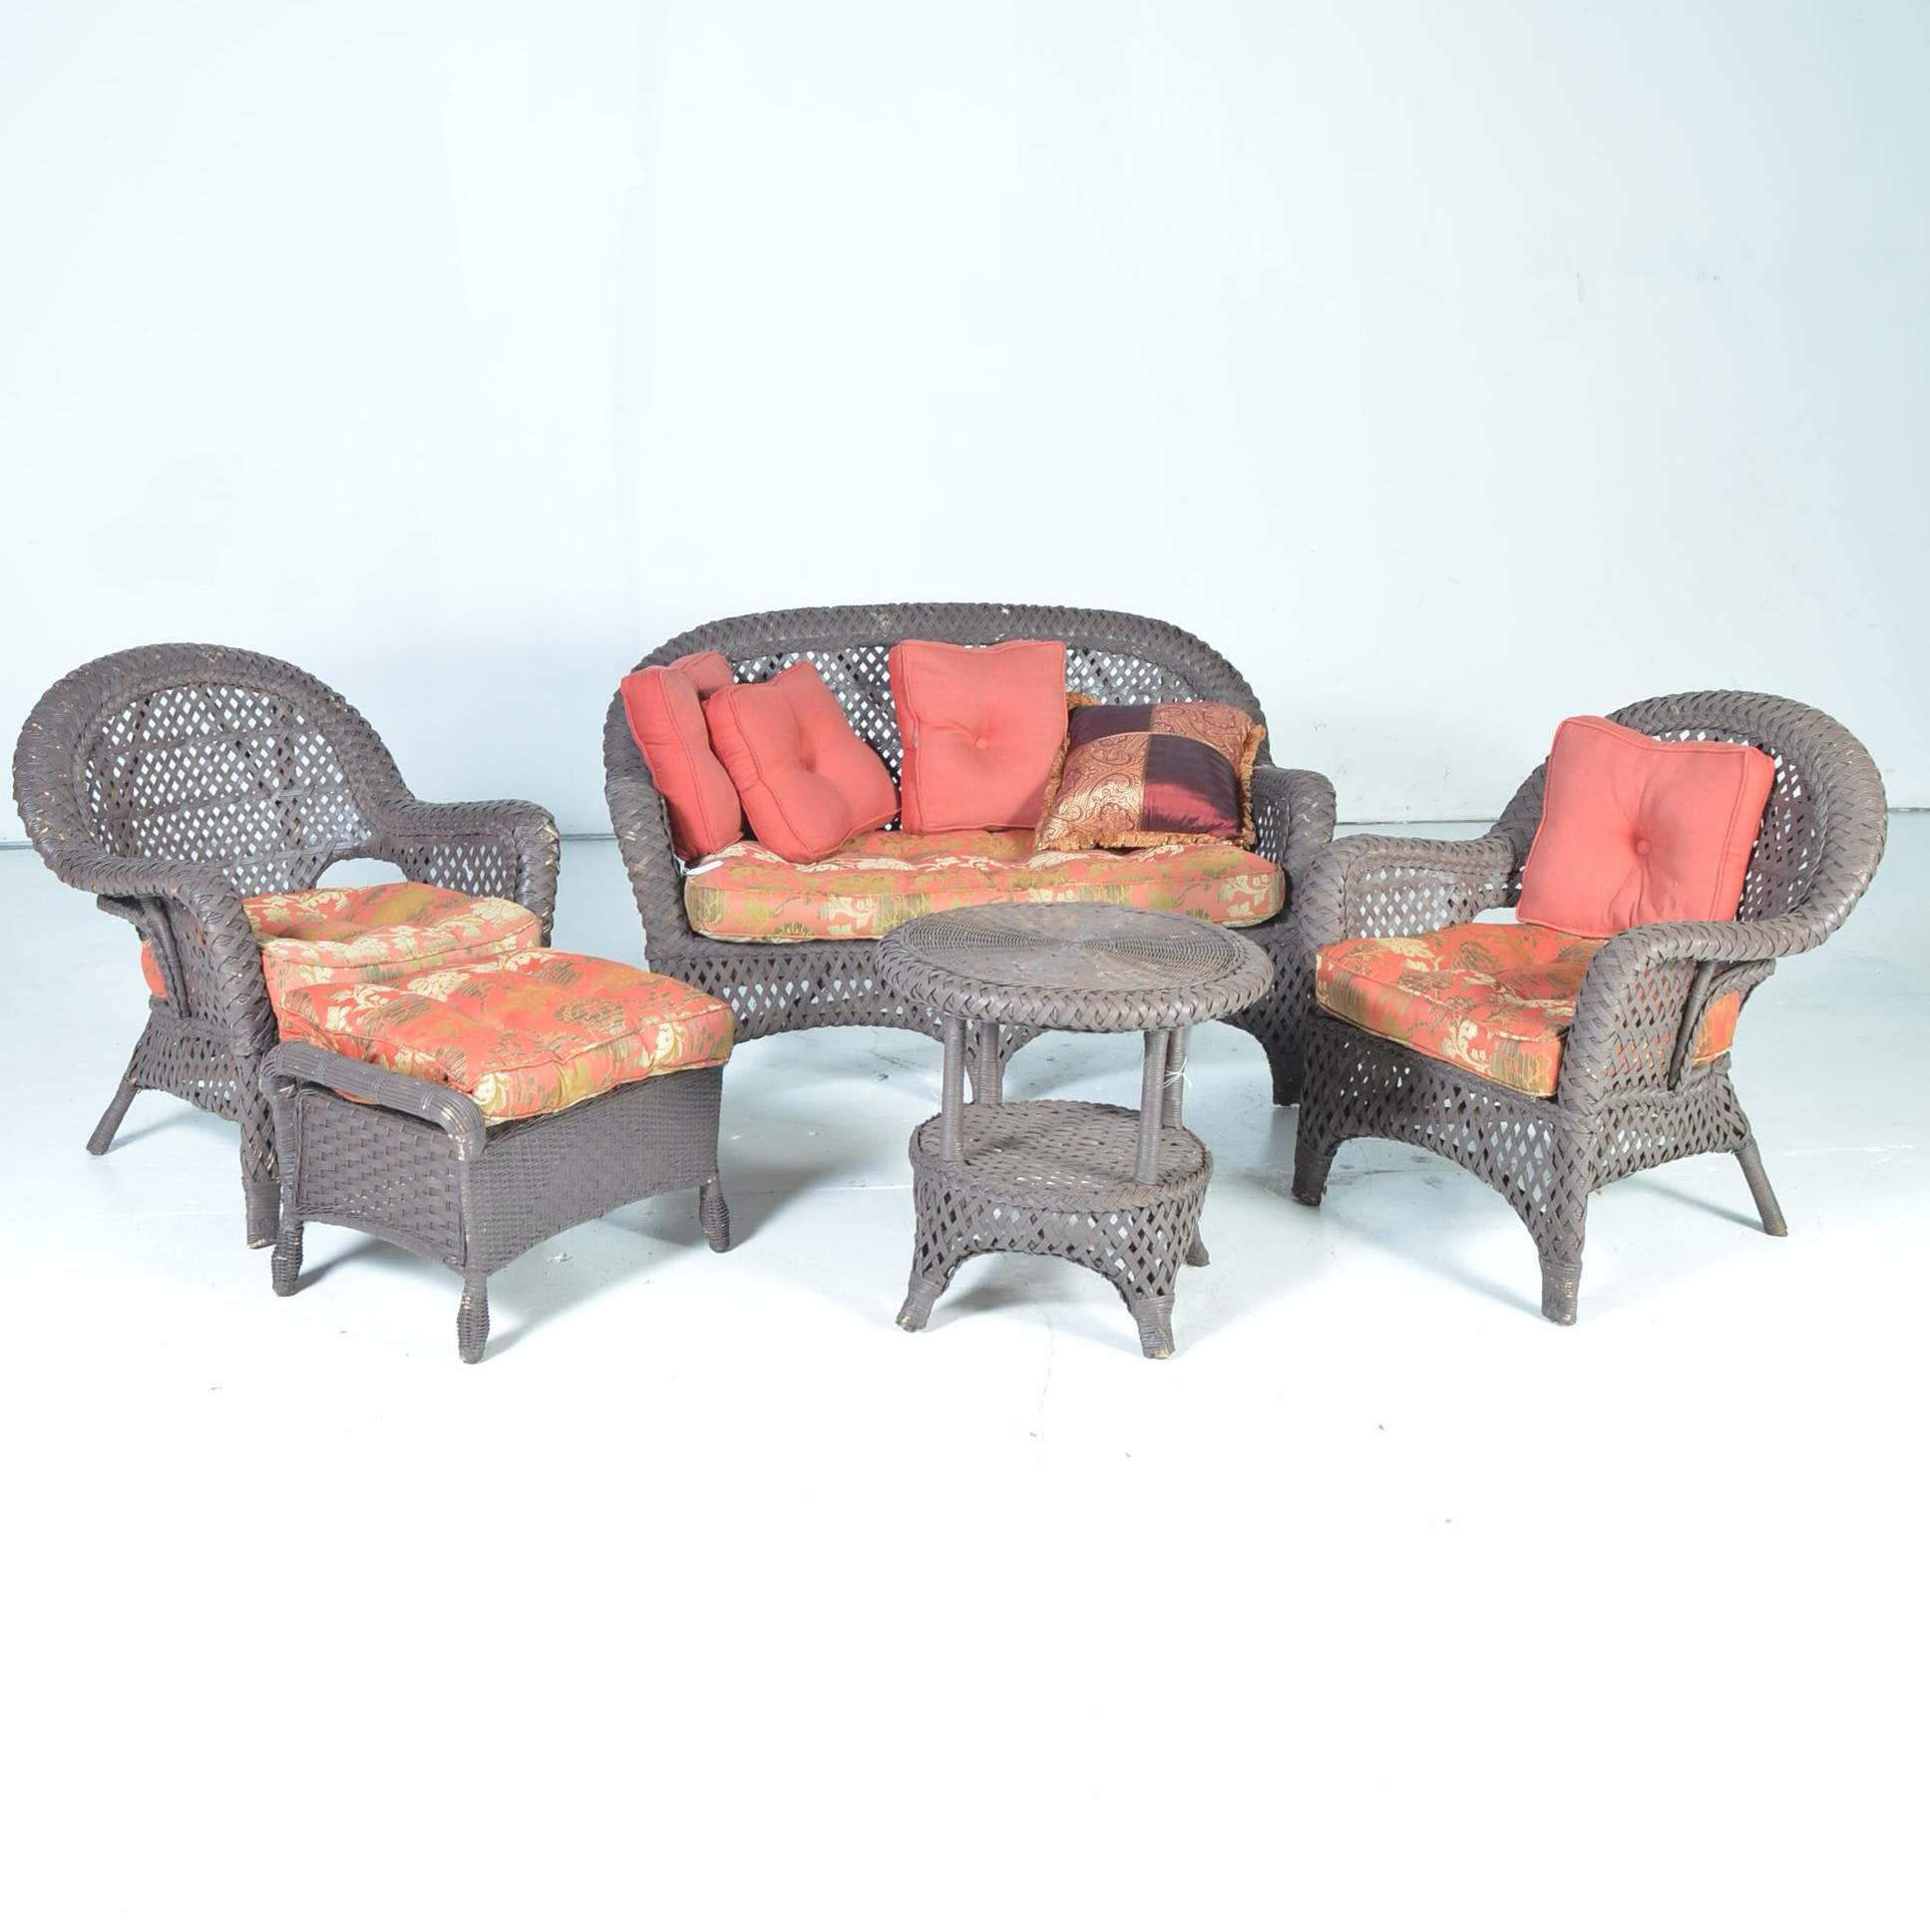 Set of Woven Patio Furniture